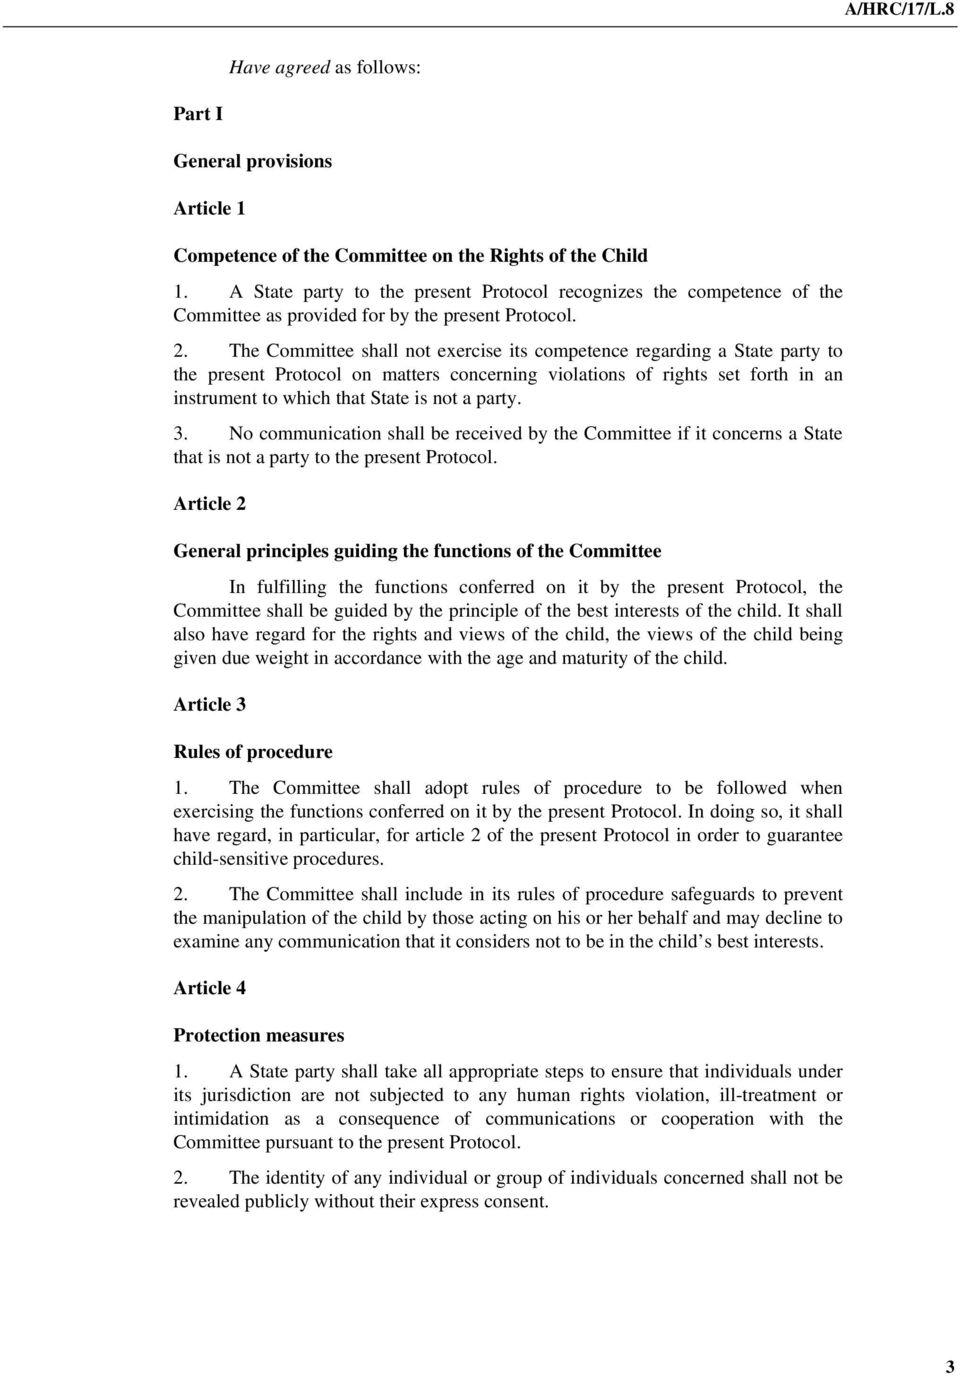 The Committee shall not exercise its competence regarding a State party to the present Protocol on matters concerning violations of rights set forth in an instrument to which that State is not a